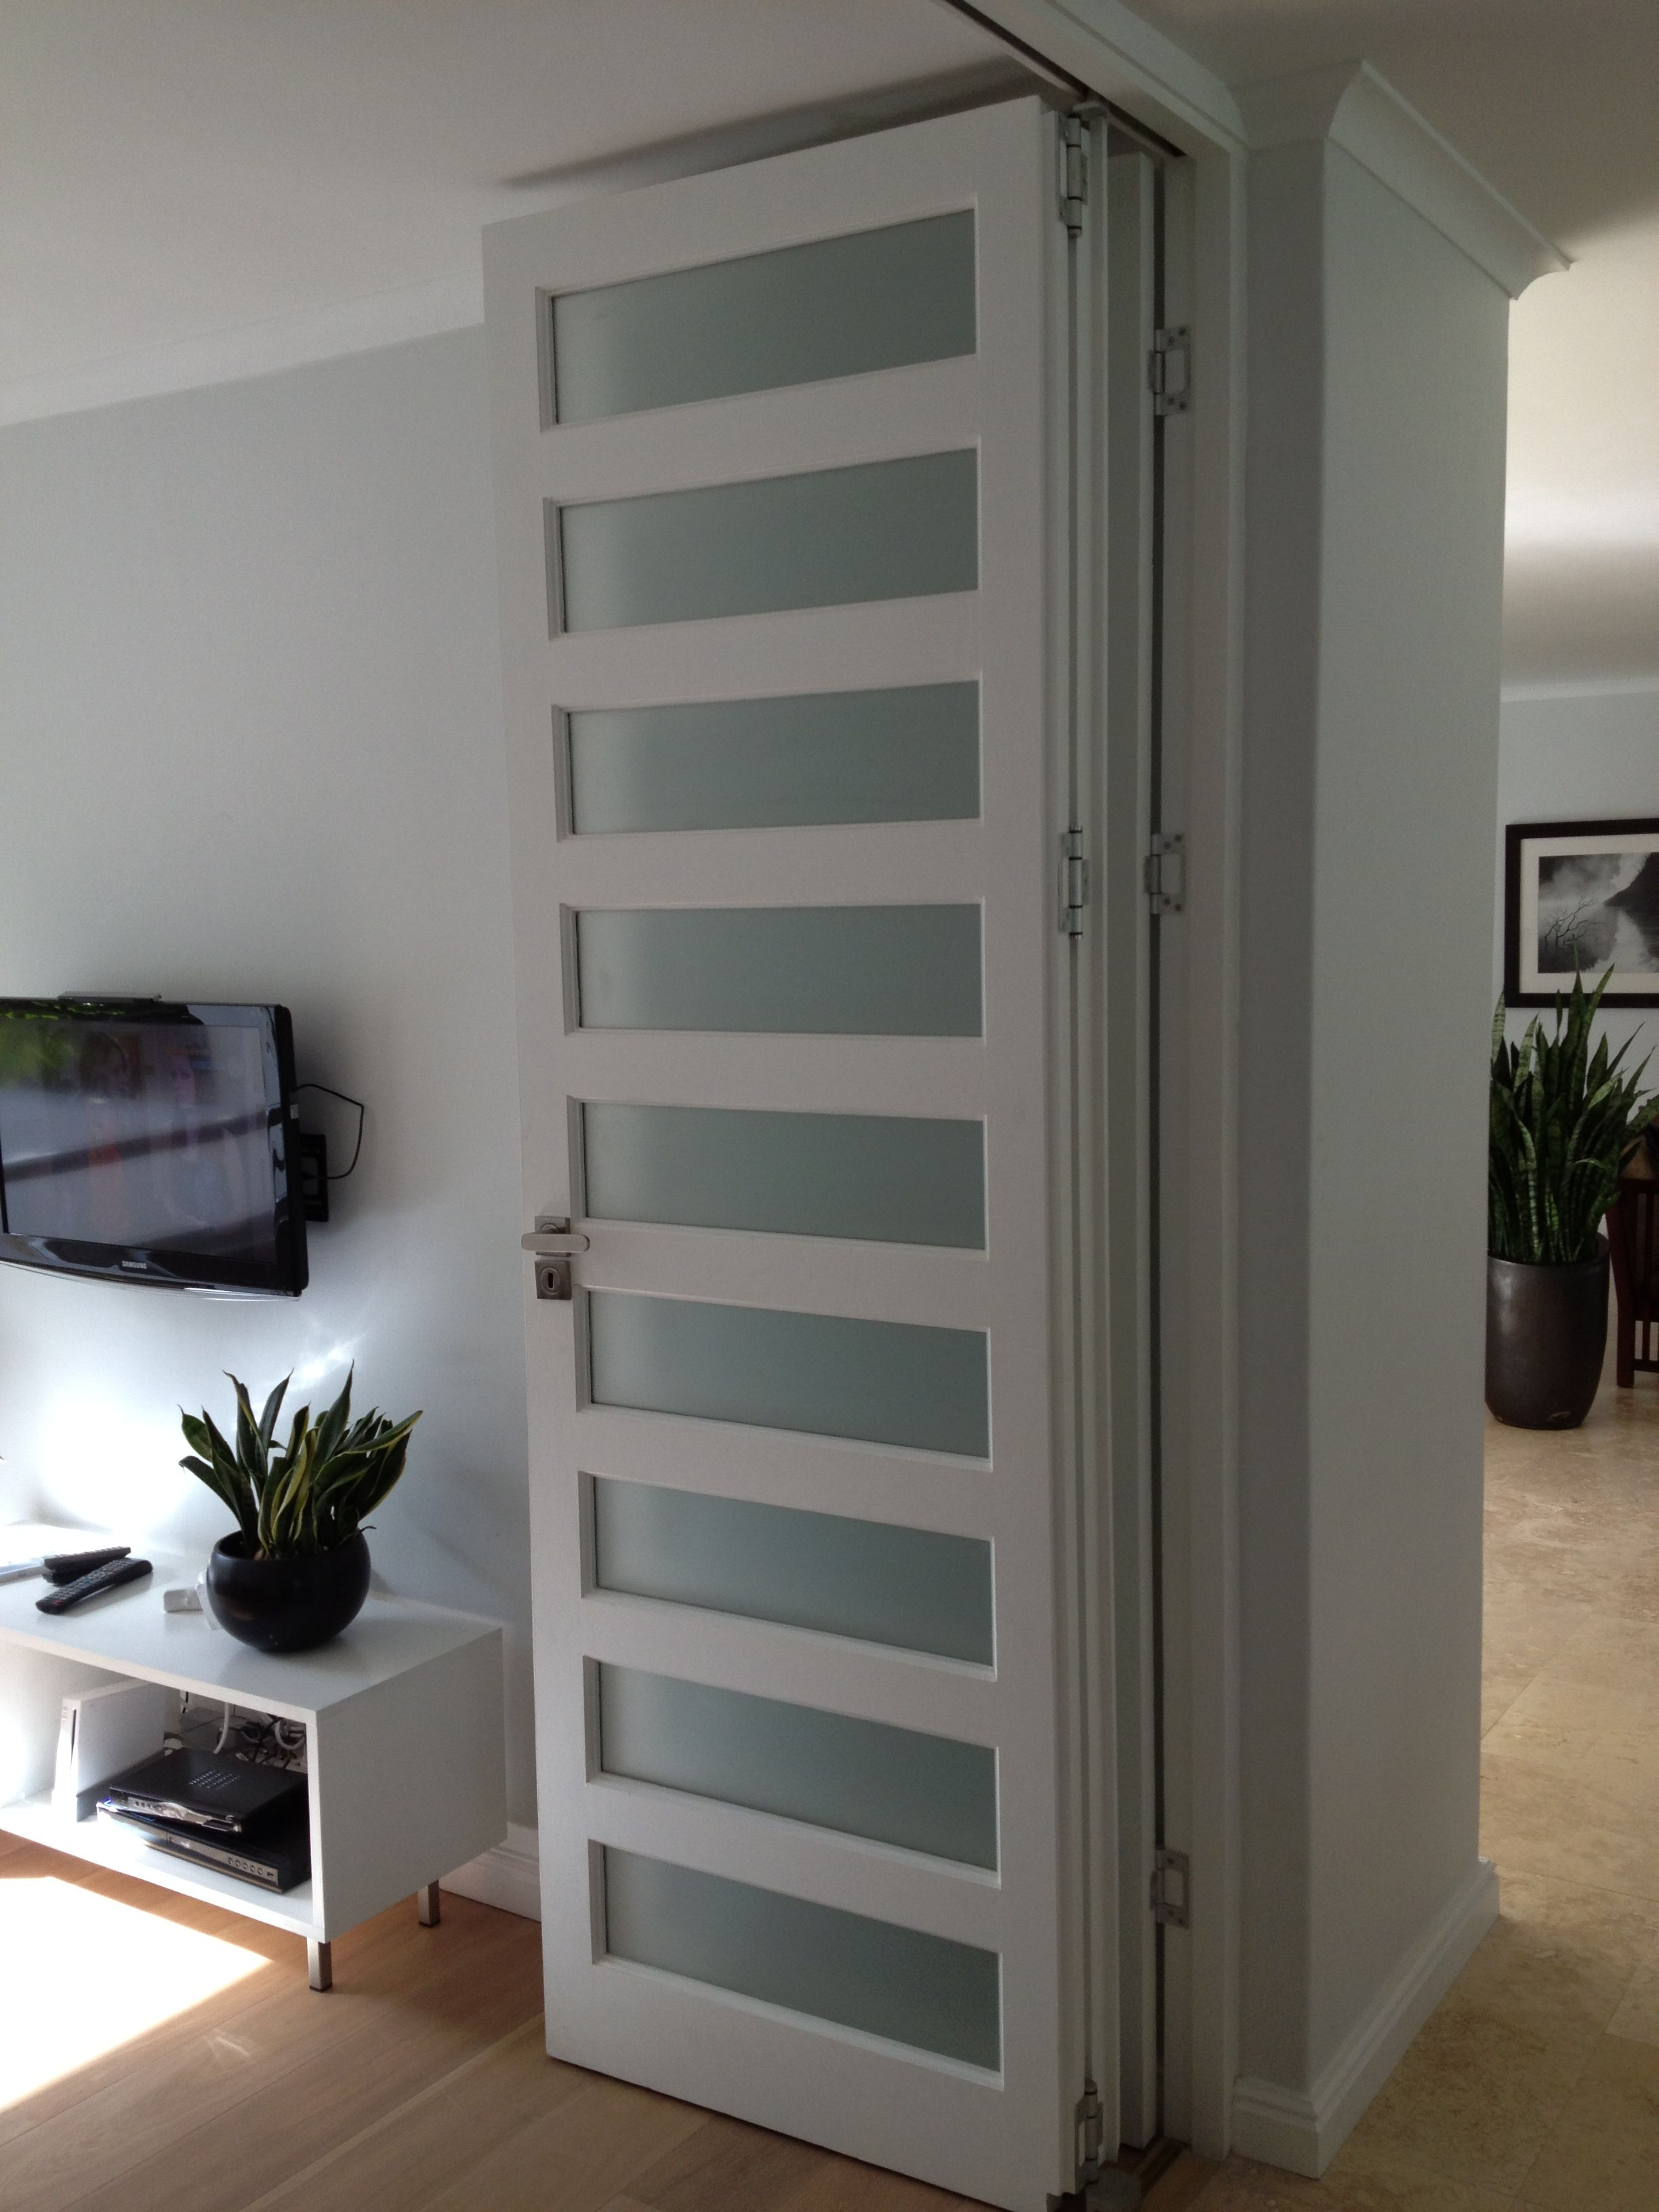 Bon Folding Room Divider By Door And Window Decor. Www.doorsystems.co.za #doors  #bifolddoors